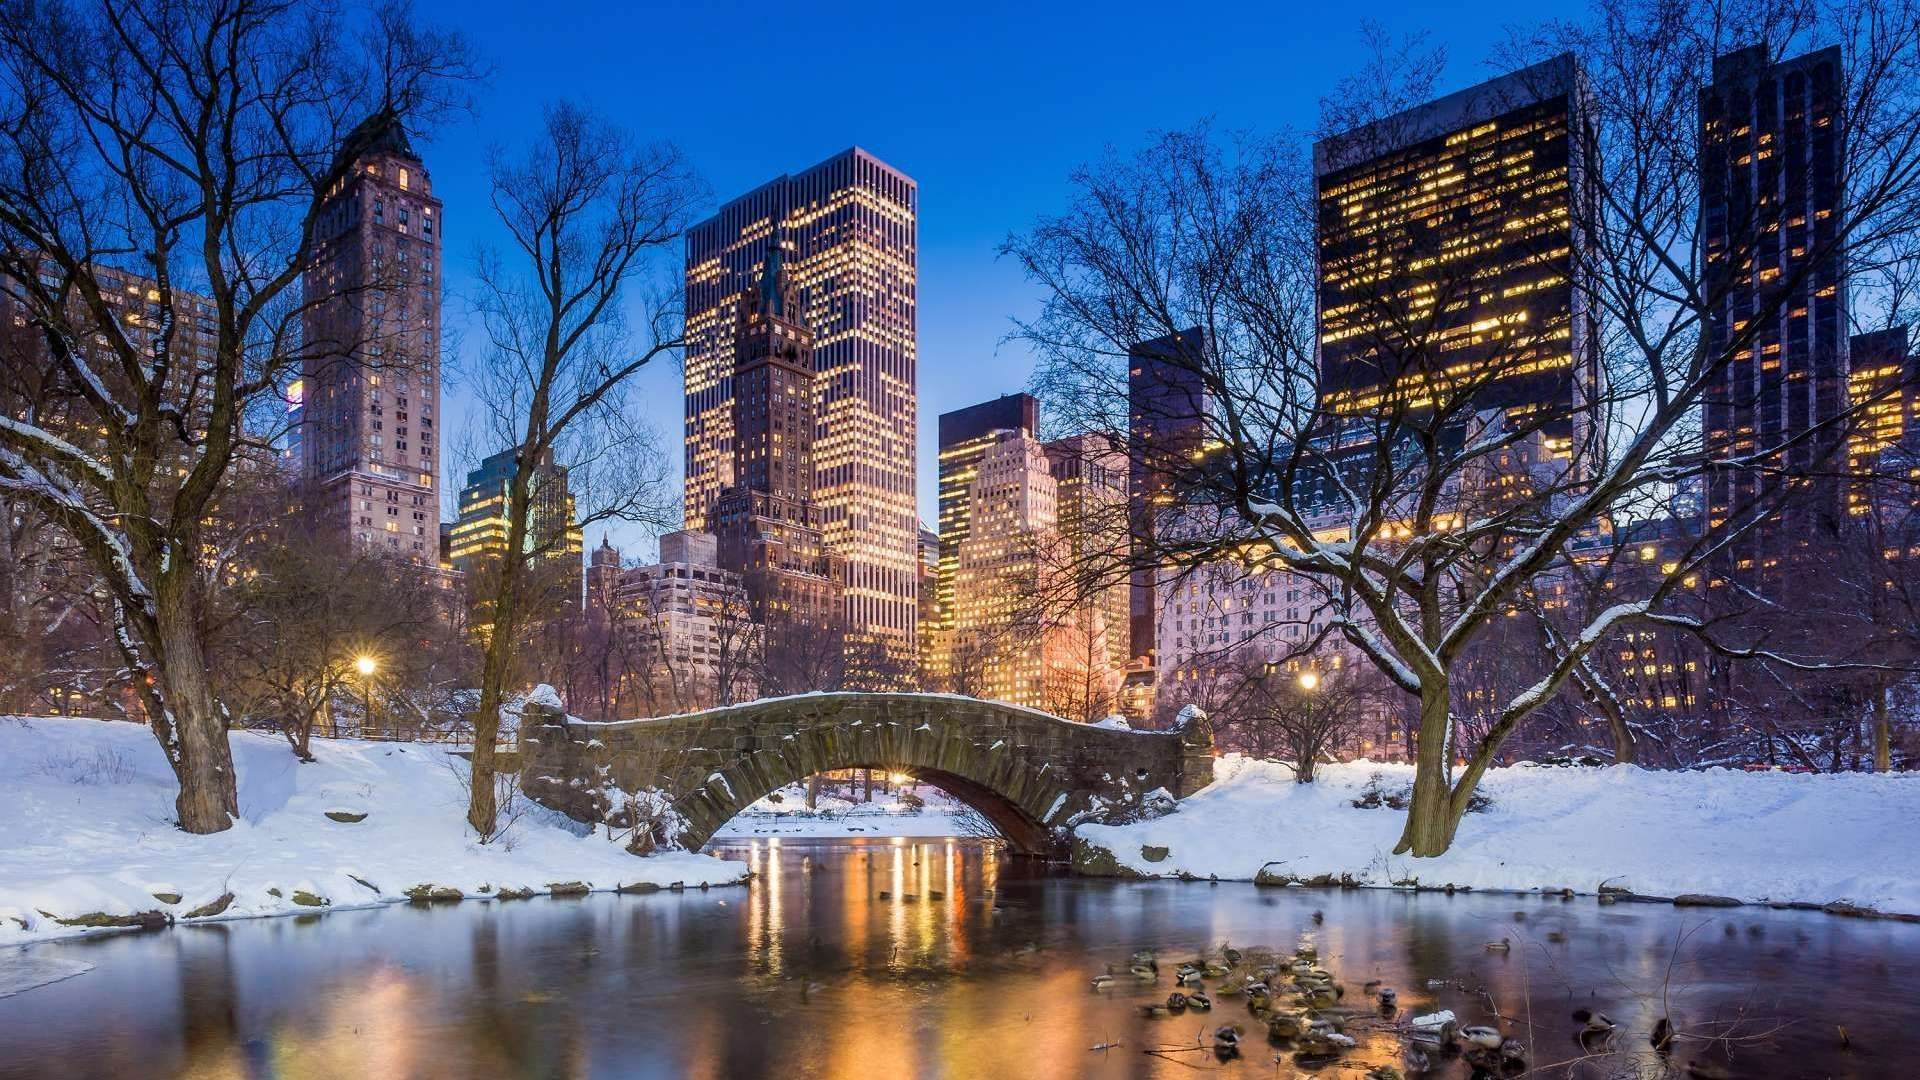 Weihnachtsbilder New York.Winter And Christmas Wallpaper 77 Images